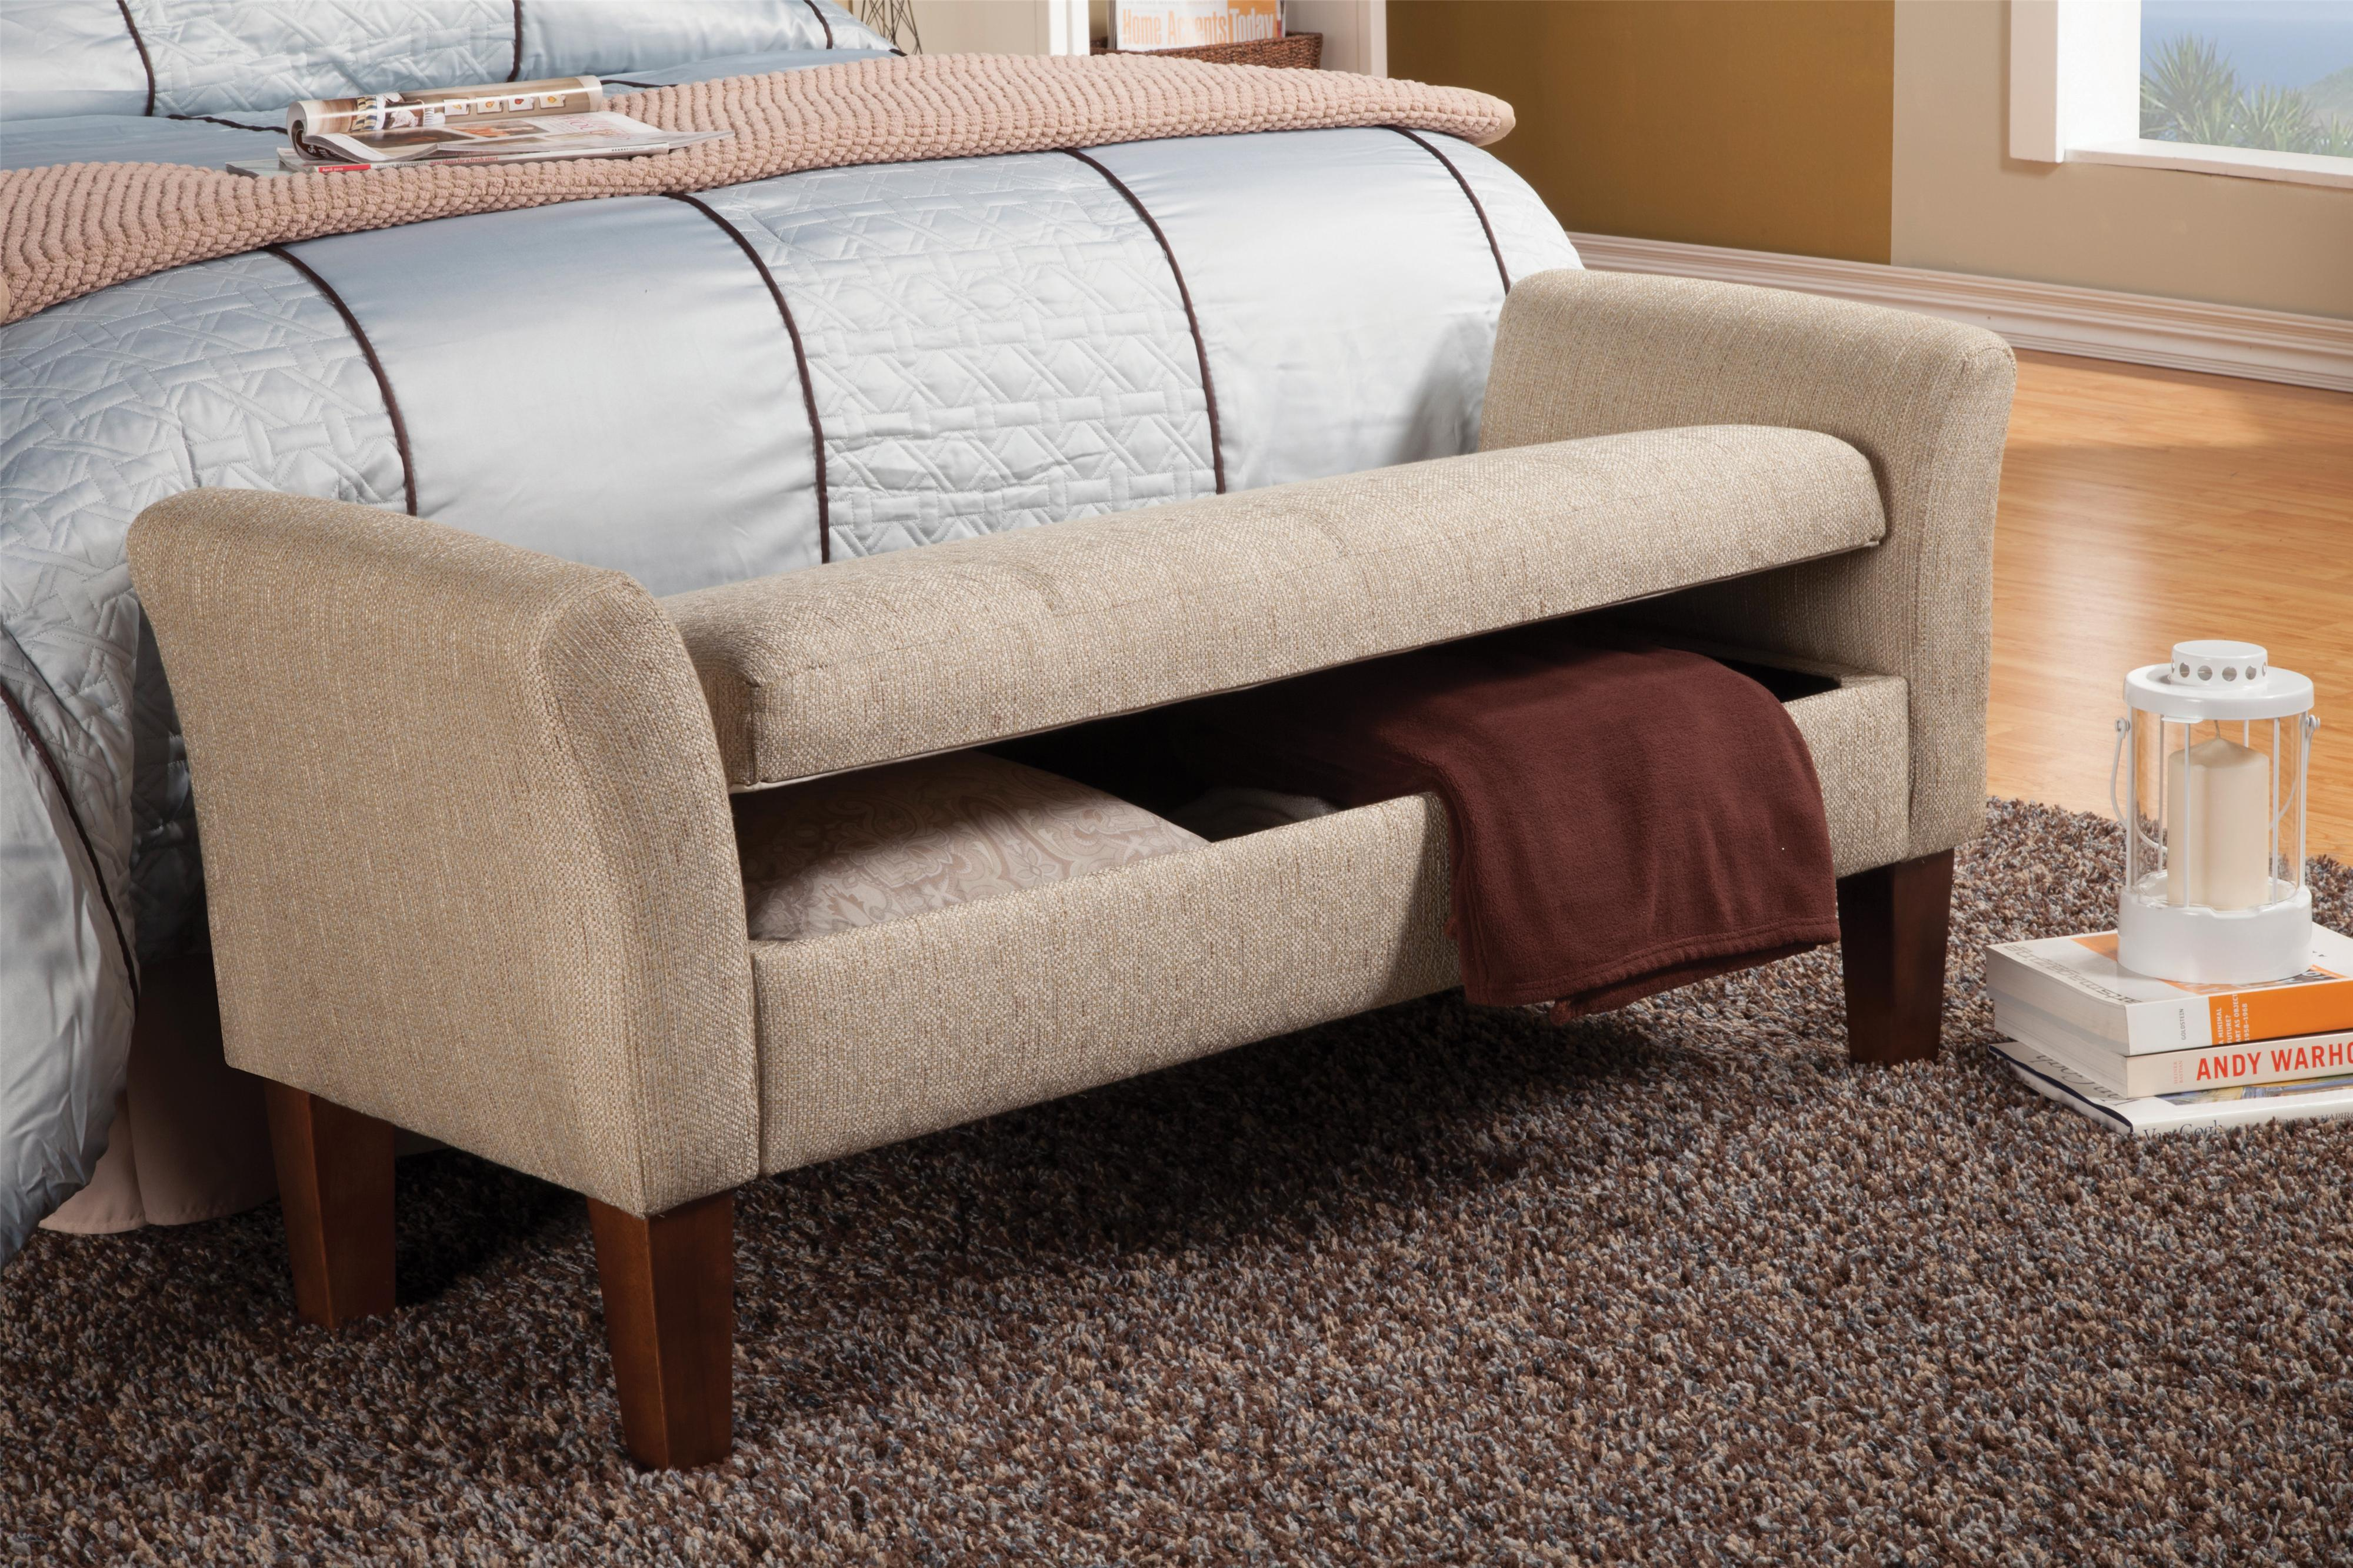 Coaster Benches Storage Bench In Tan Woven Fabric Value